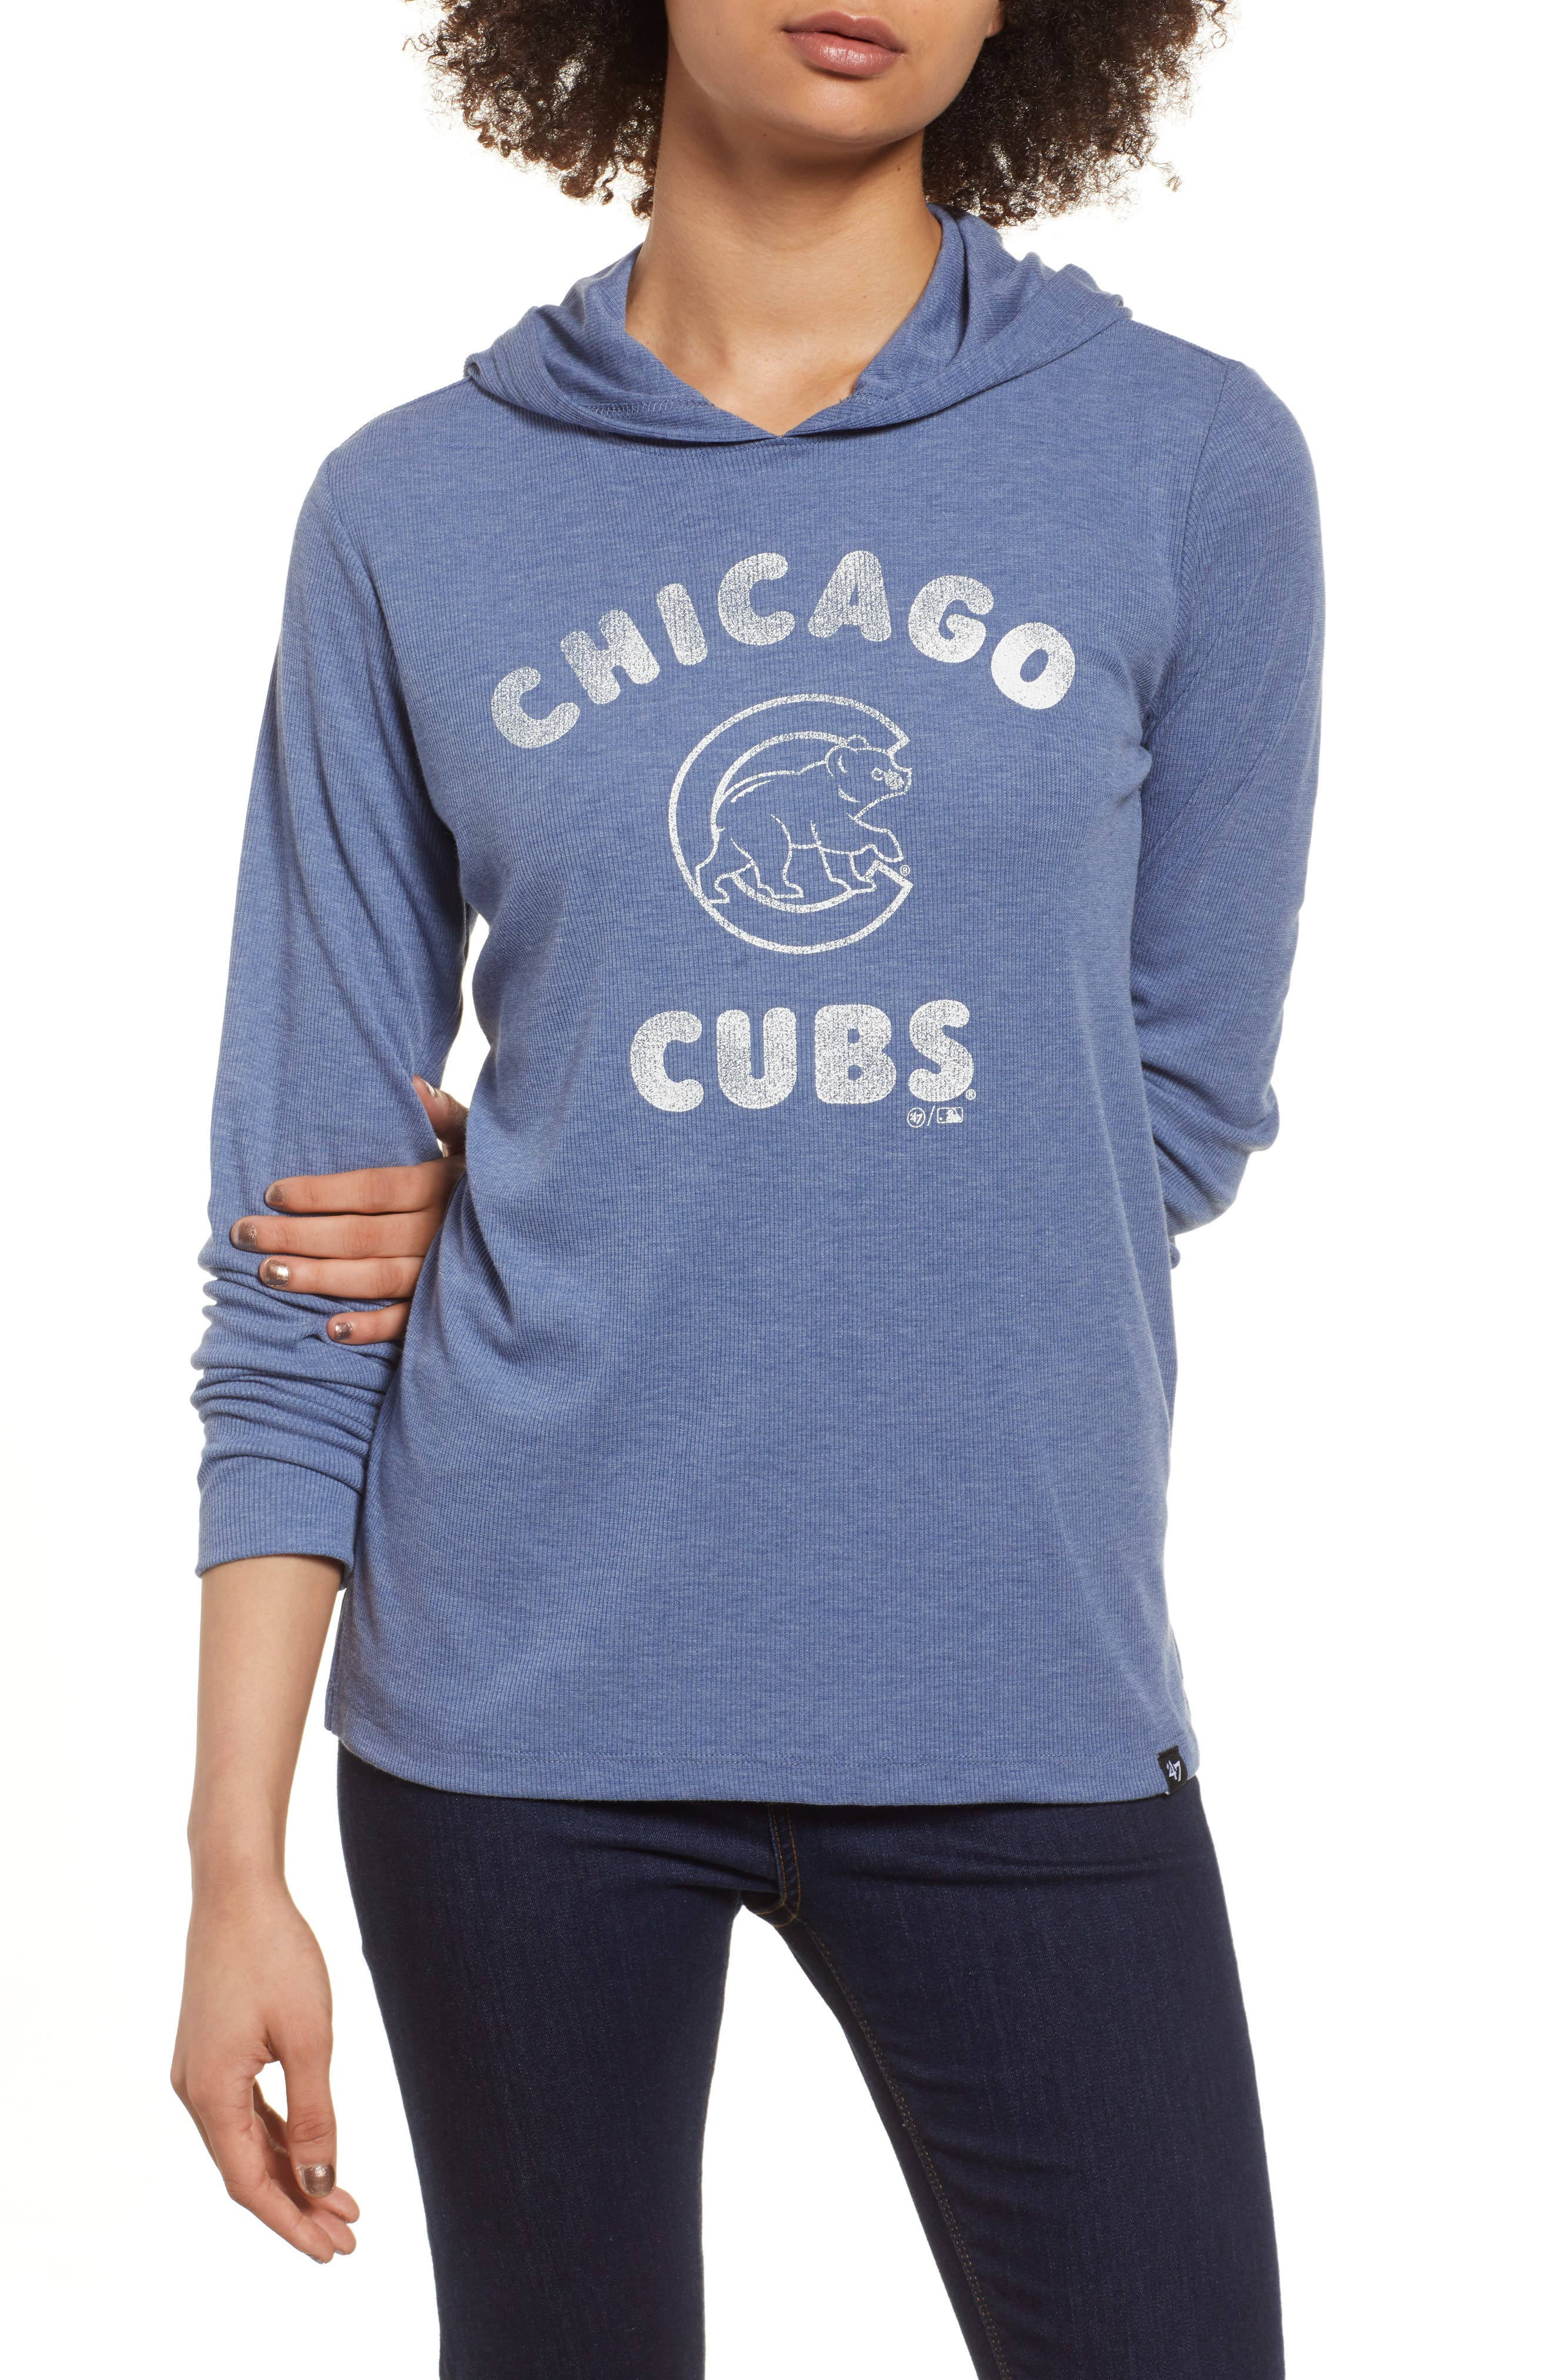 Campbell Chicago Cubs Rib Knit Hoodie,                             Main thumbnail 1, color,                             400